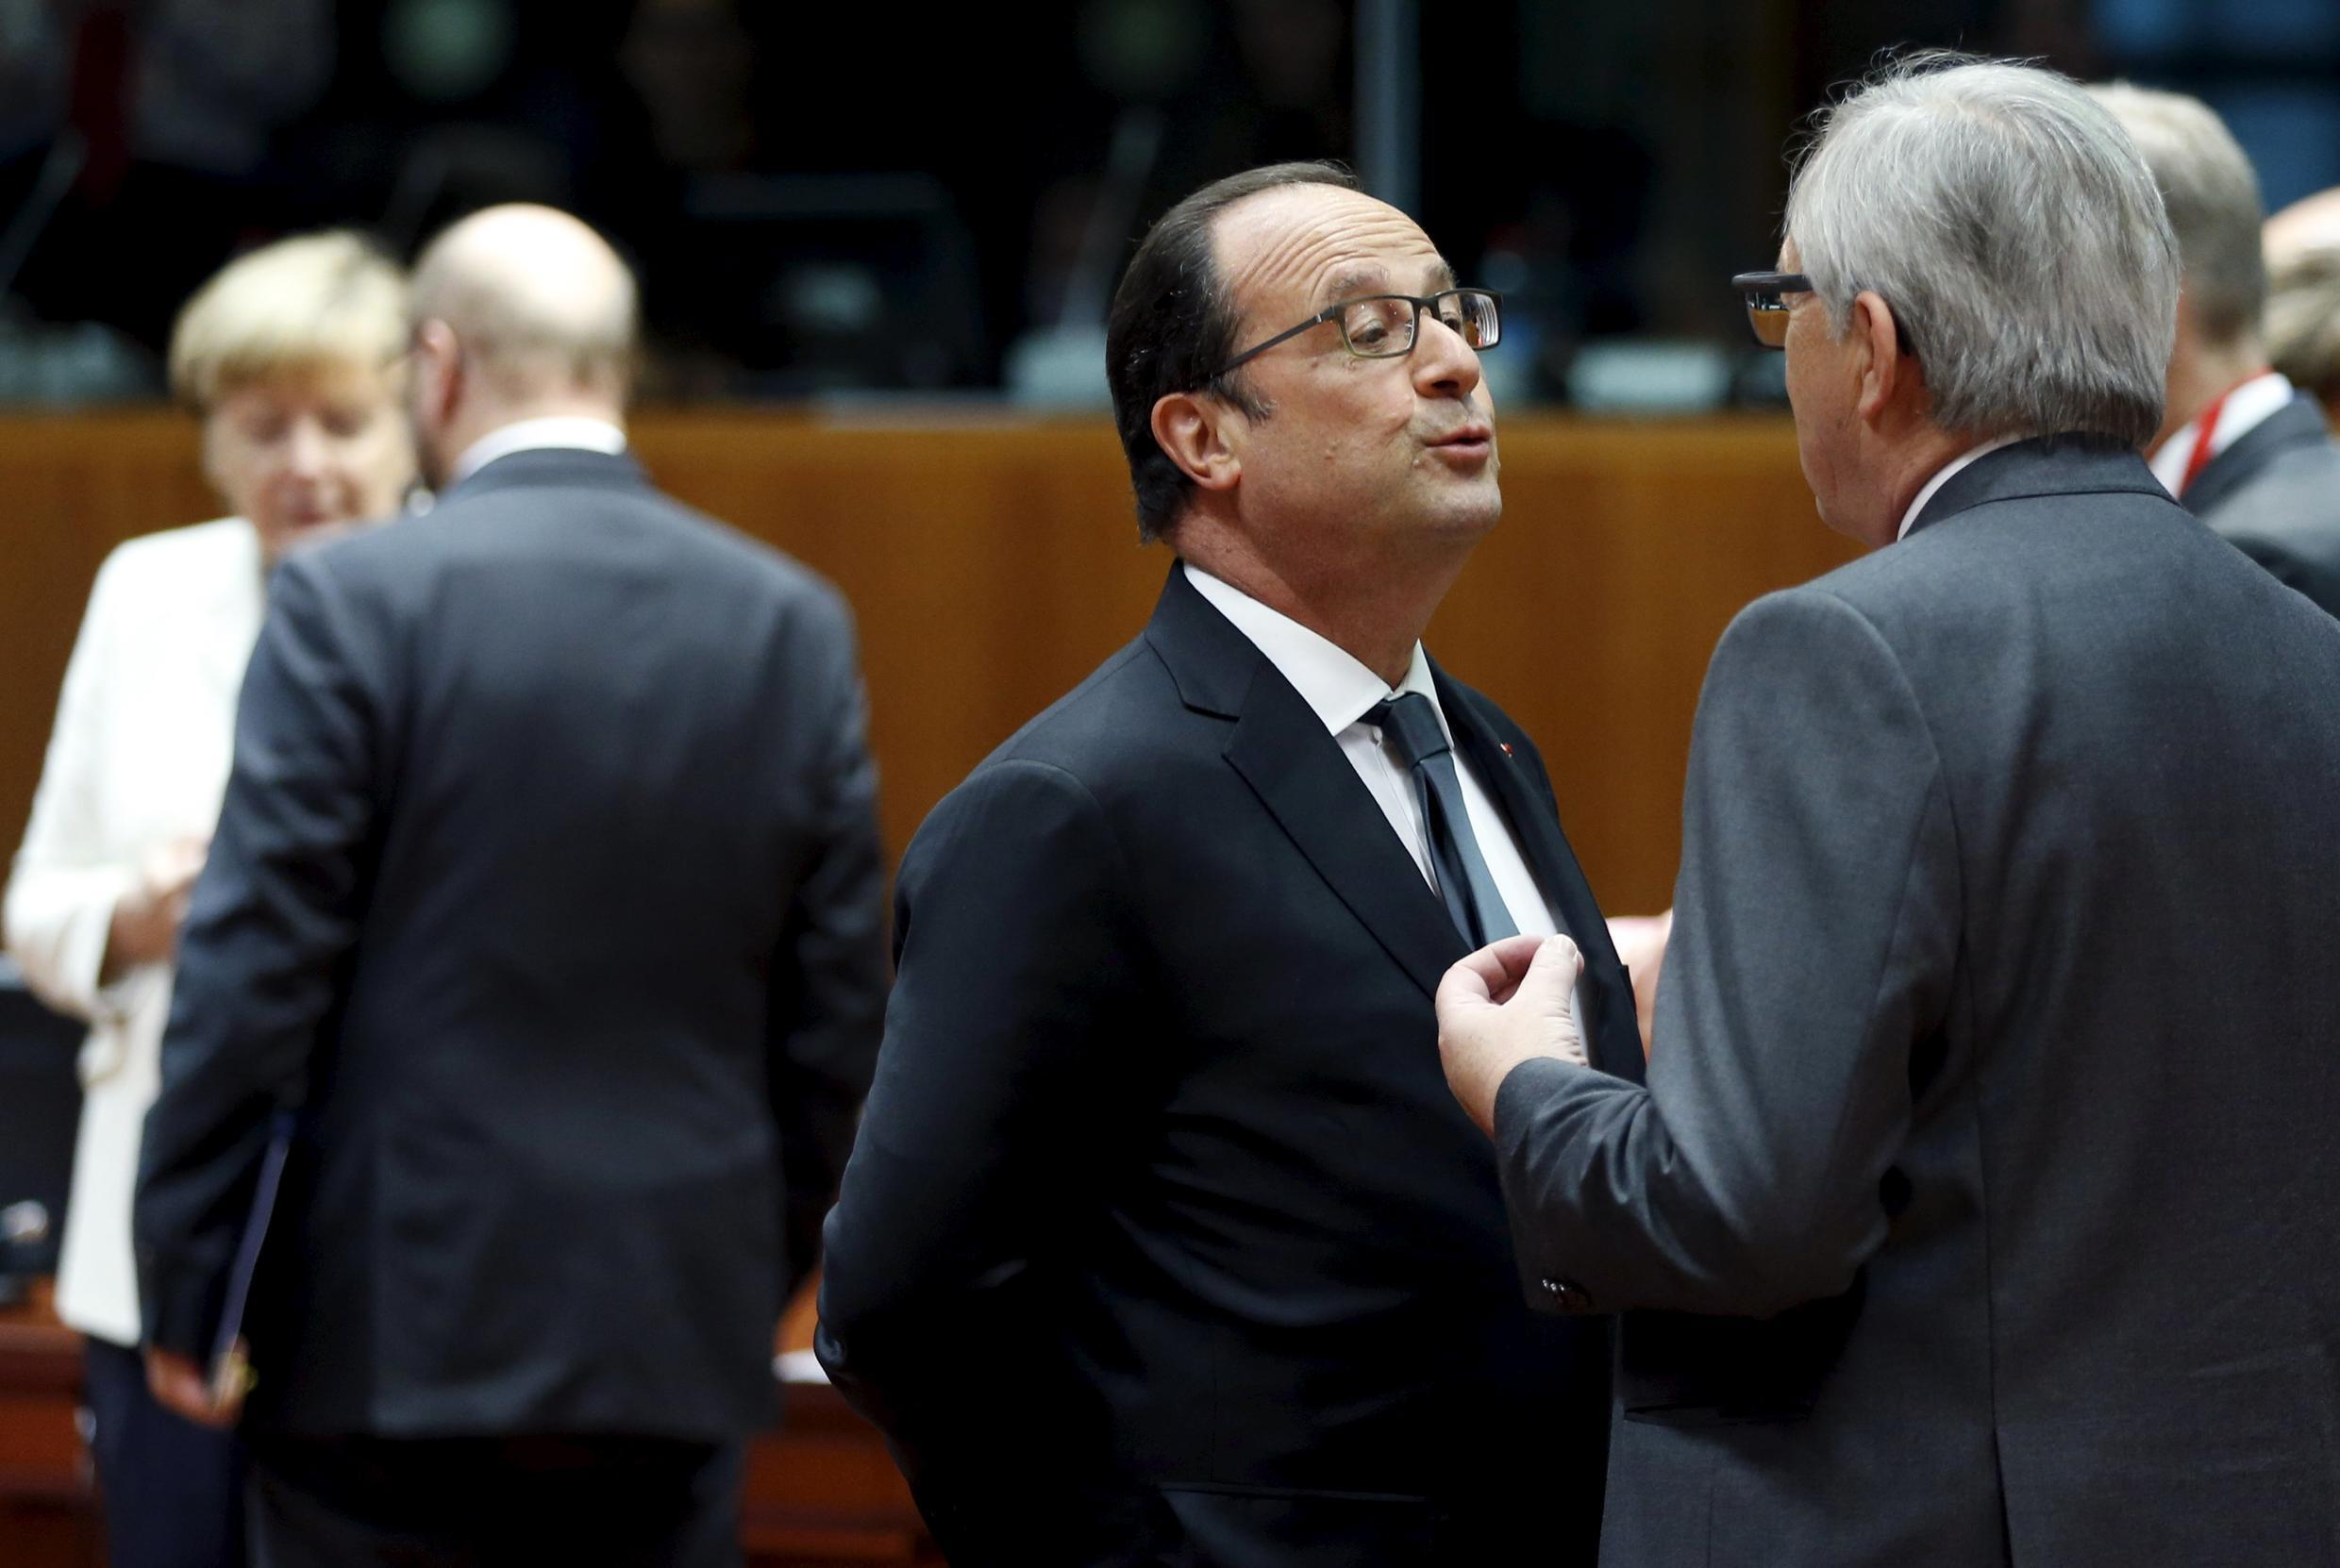 France's President Francois Hollande talks to European Commission President Jean-Claude Juncker (R) next to Germany's Chancellor Angela Merkel and European Parliament President Martin Schulz (L) on Monday